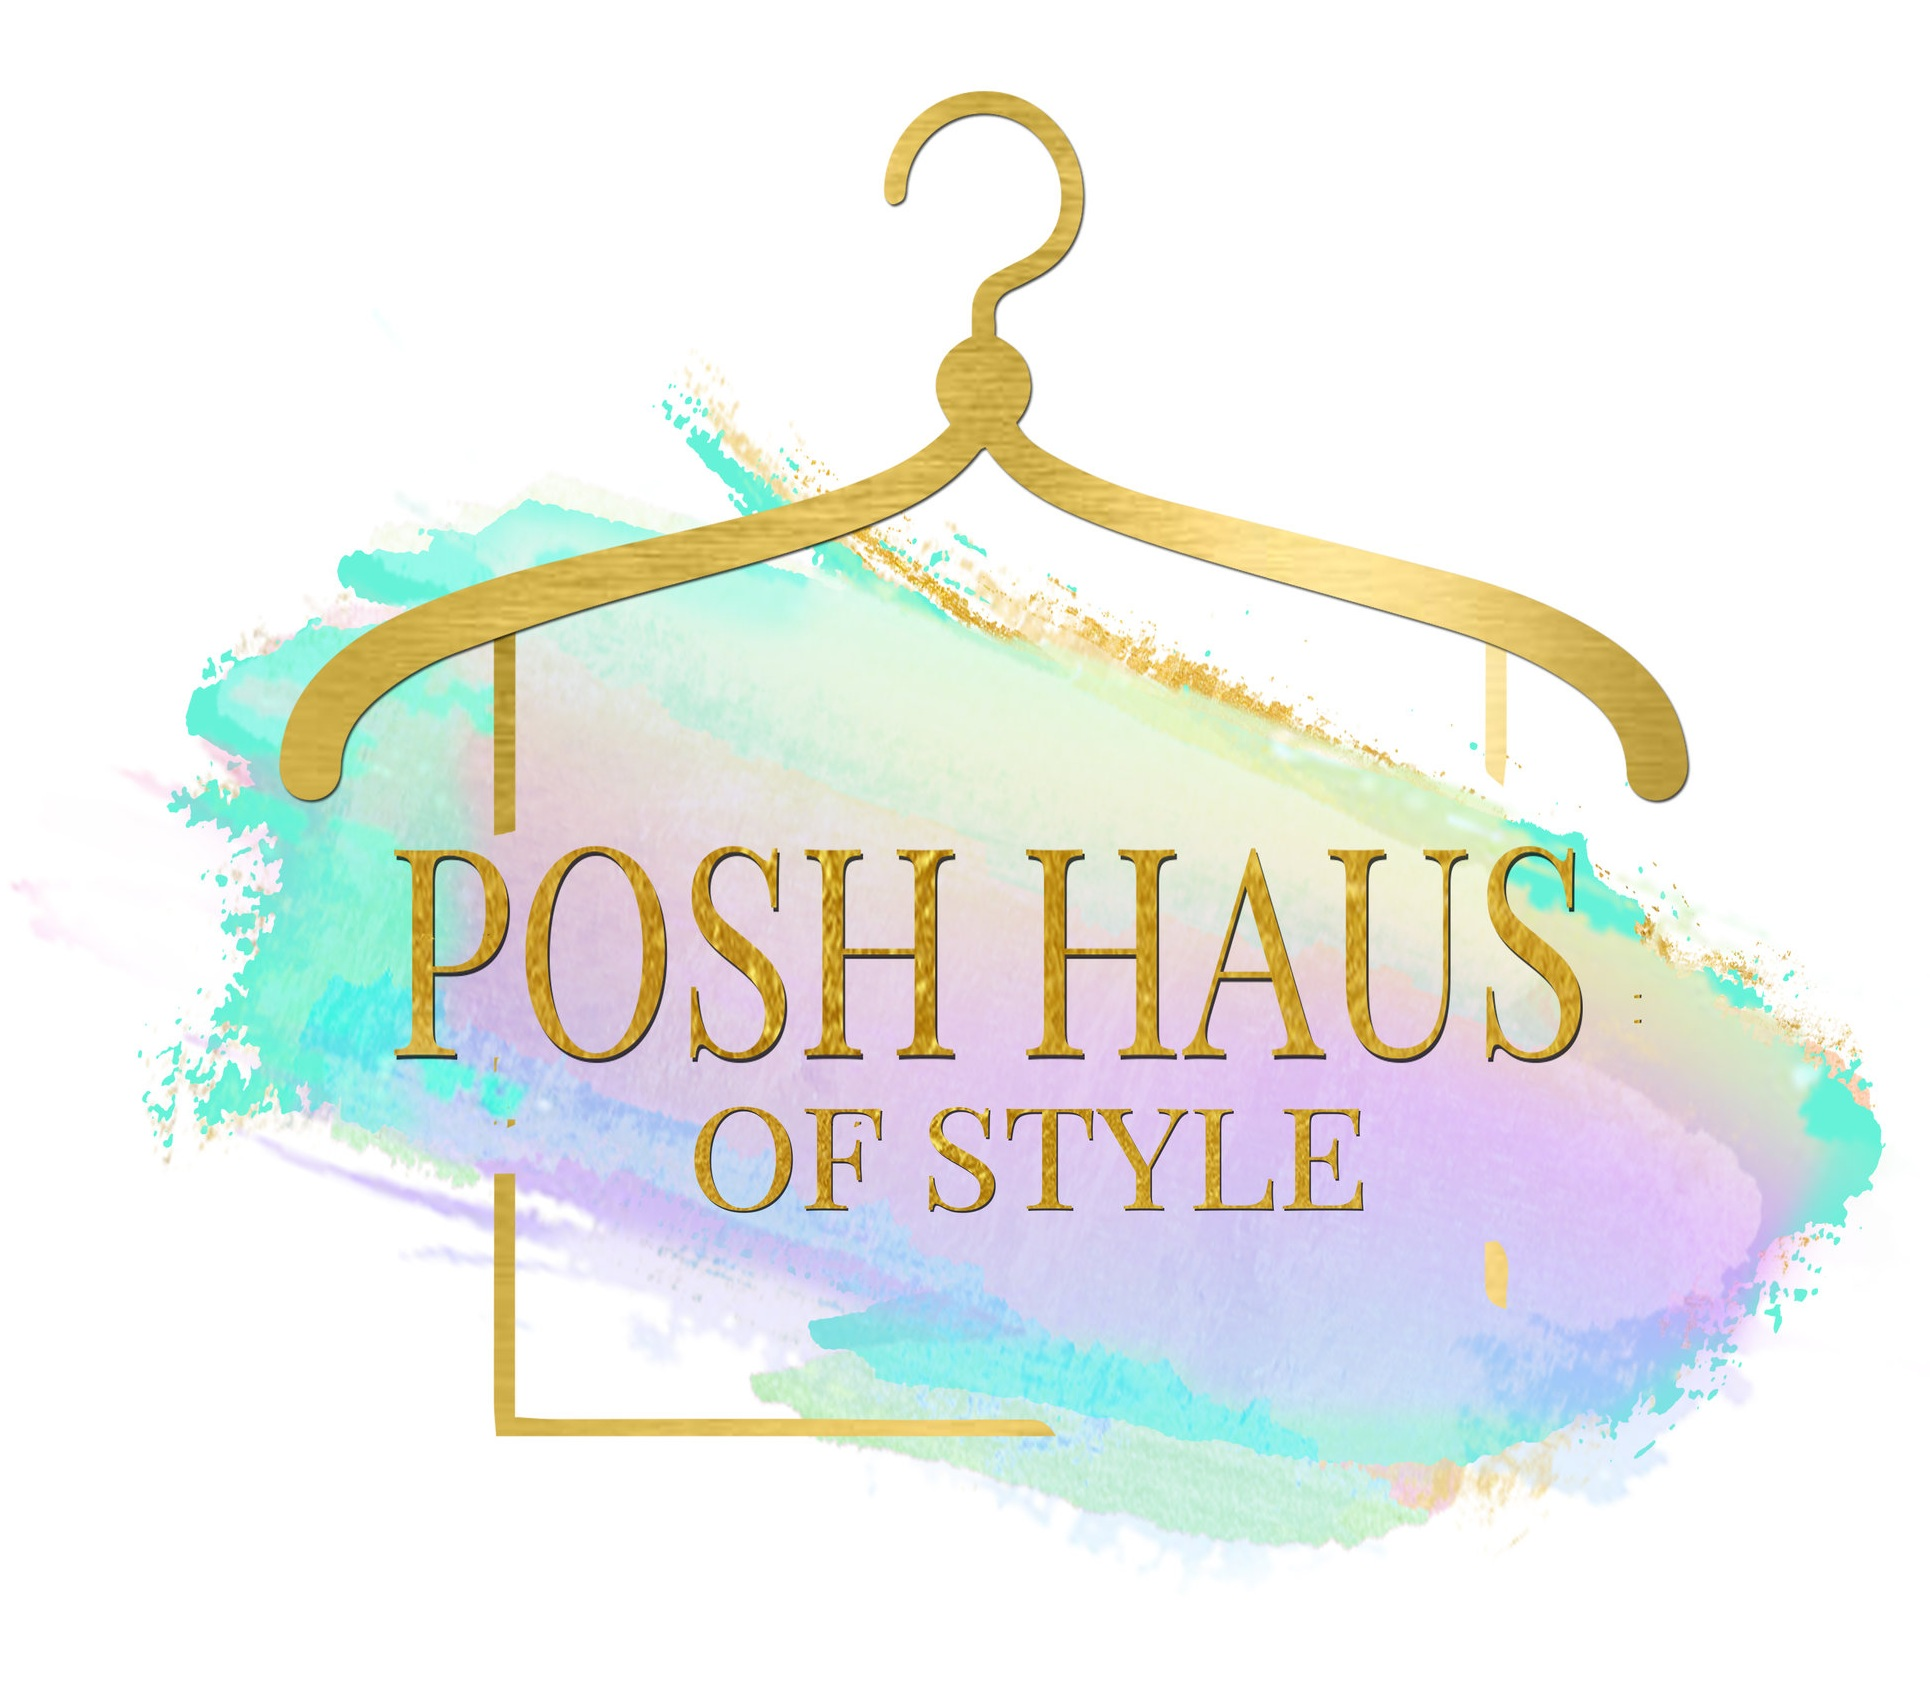 PoshHausofStyle  is a Sister-Company of The Posh Organization providing focused styling and organizational practices that shape the personal image and lifestyle of each unique client.